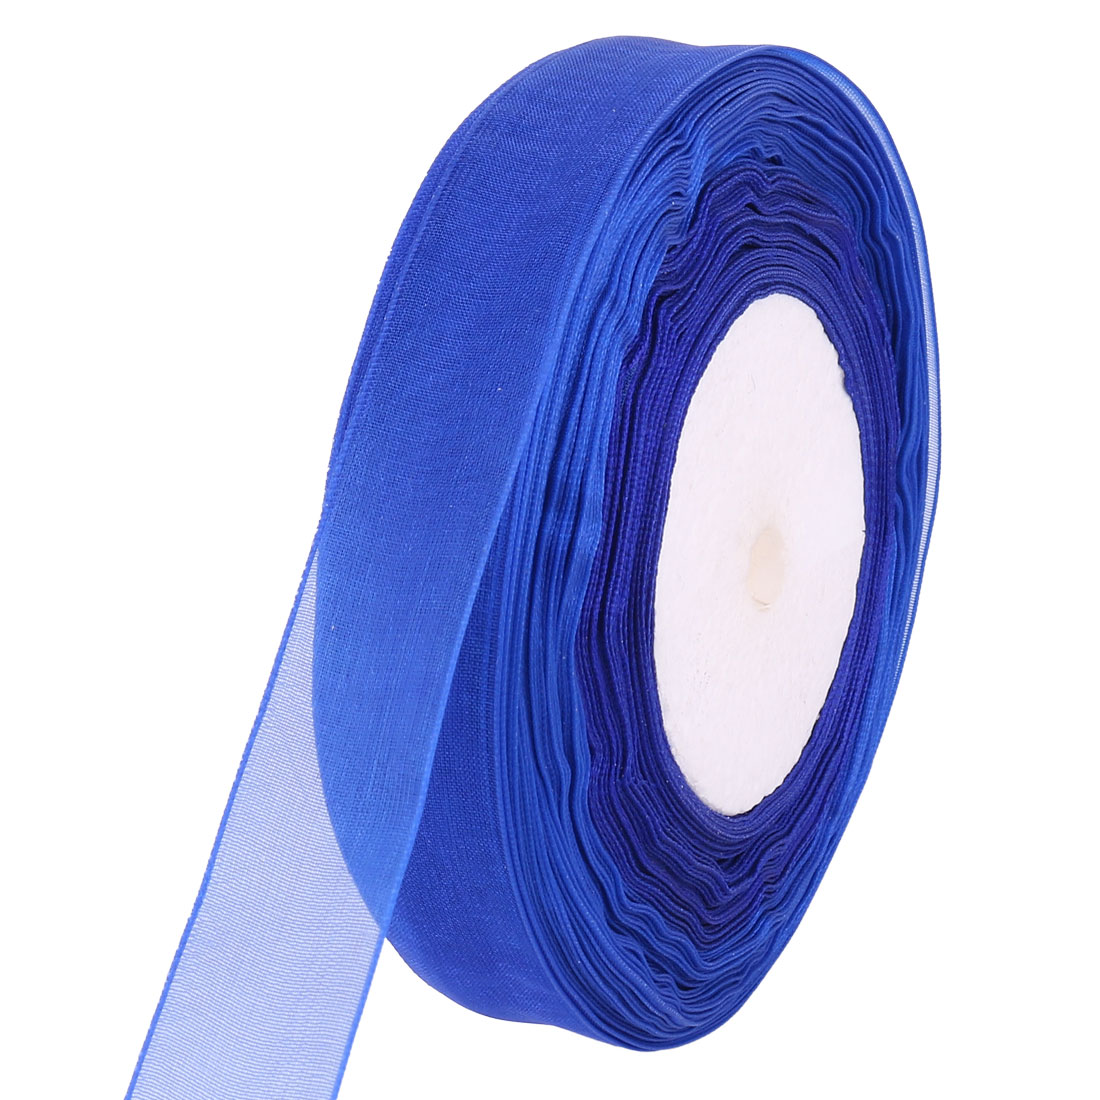 Crafts Gift Wrapping Festival Decor Organza Stain Ribbon Roll Blue 2cmx50 Yards